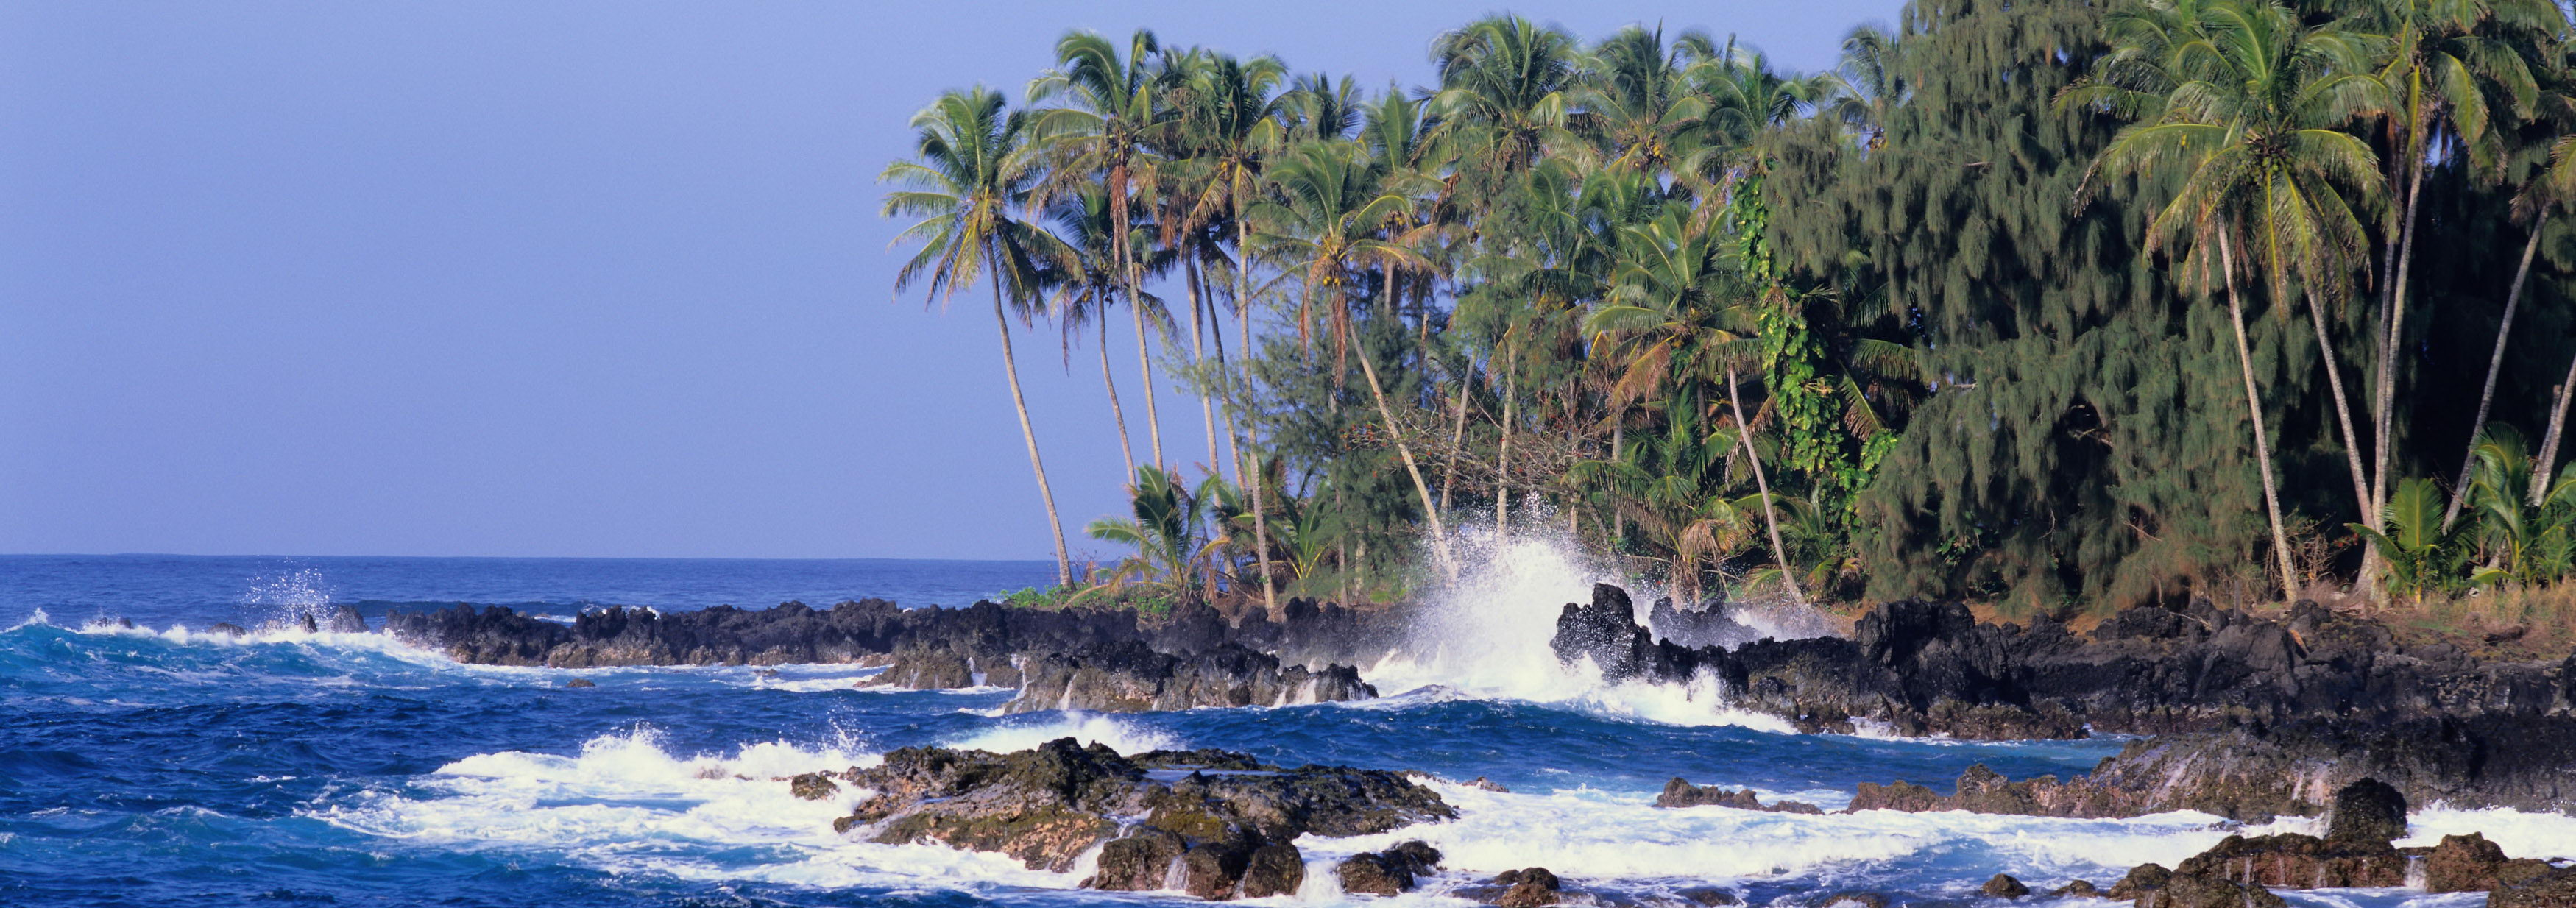 click to free download the wallpaper--Natural Scenery images - Coconut Trees by the Beach, the Incredibly Blue Sky and the Sea 3500X1234 free wallpaper download